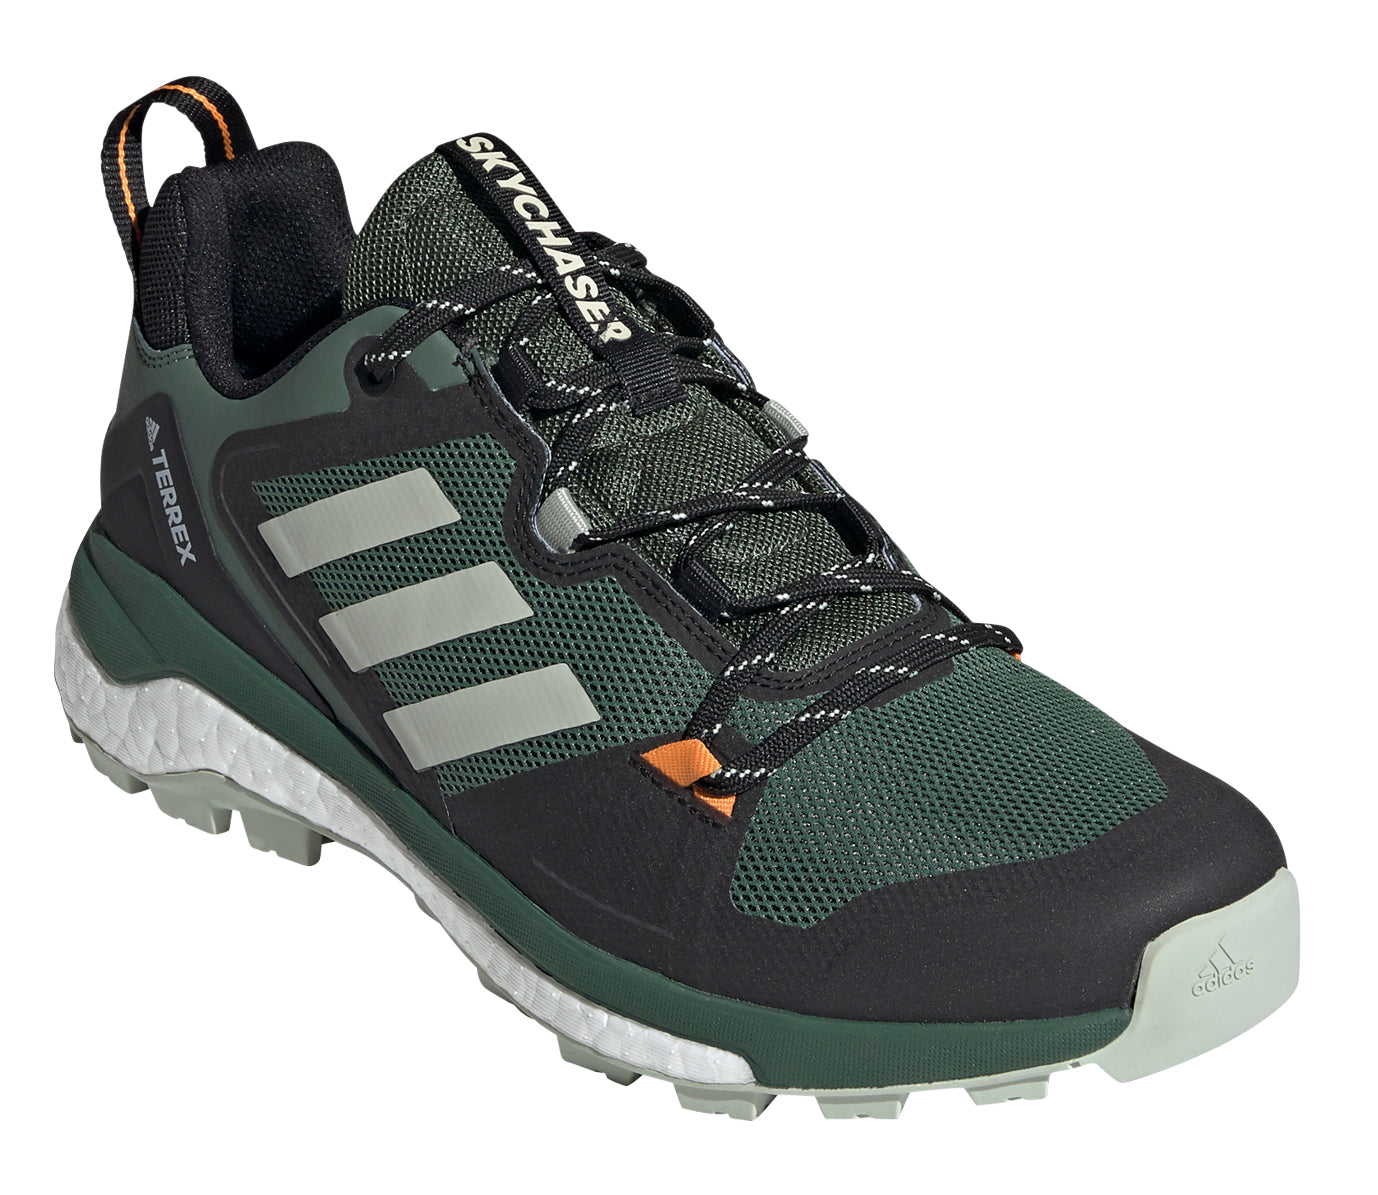 Men's adidas Terrex Skychaser 2.0 Hiking Shoe in Green Oxide/Halo Green/Crew Orange from the front